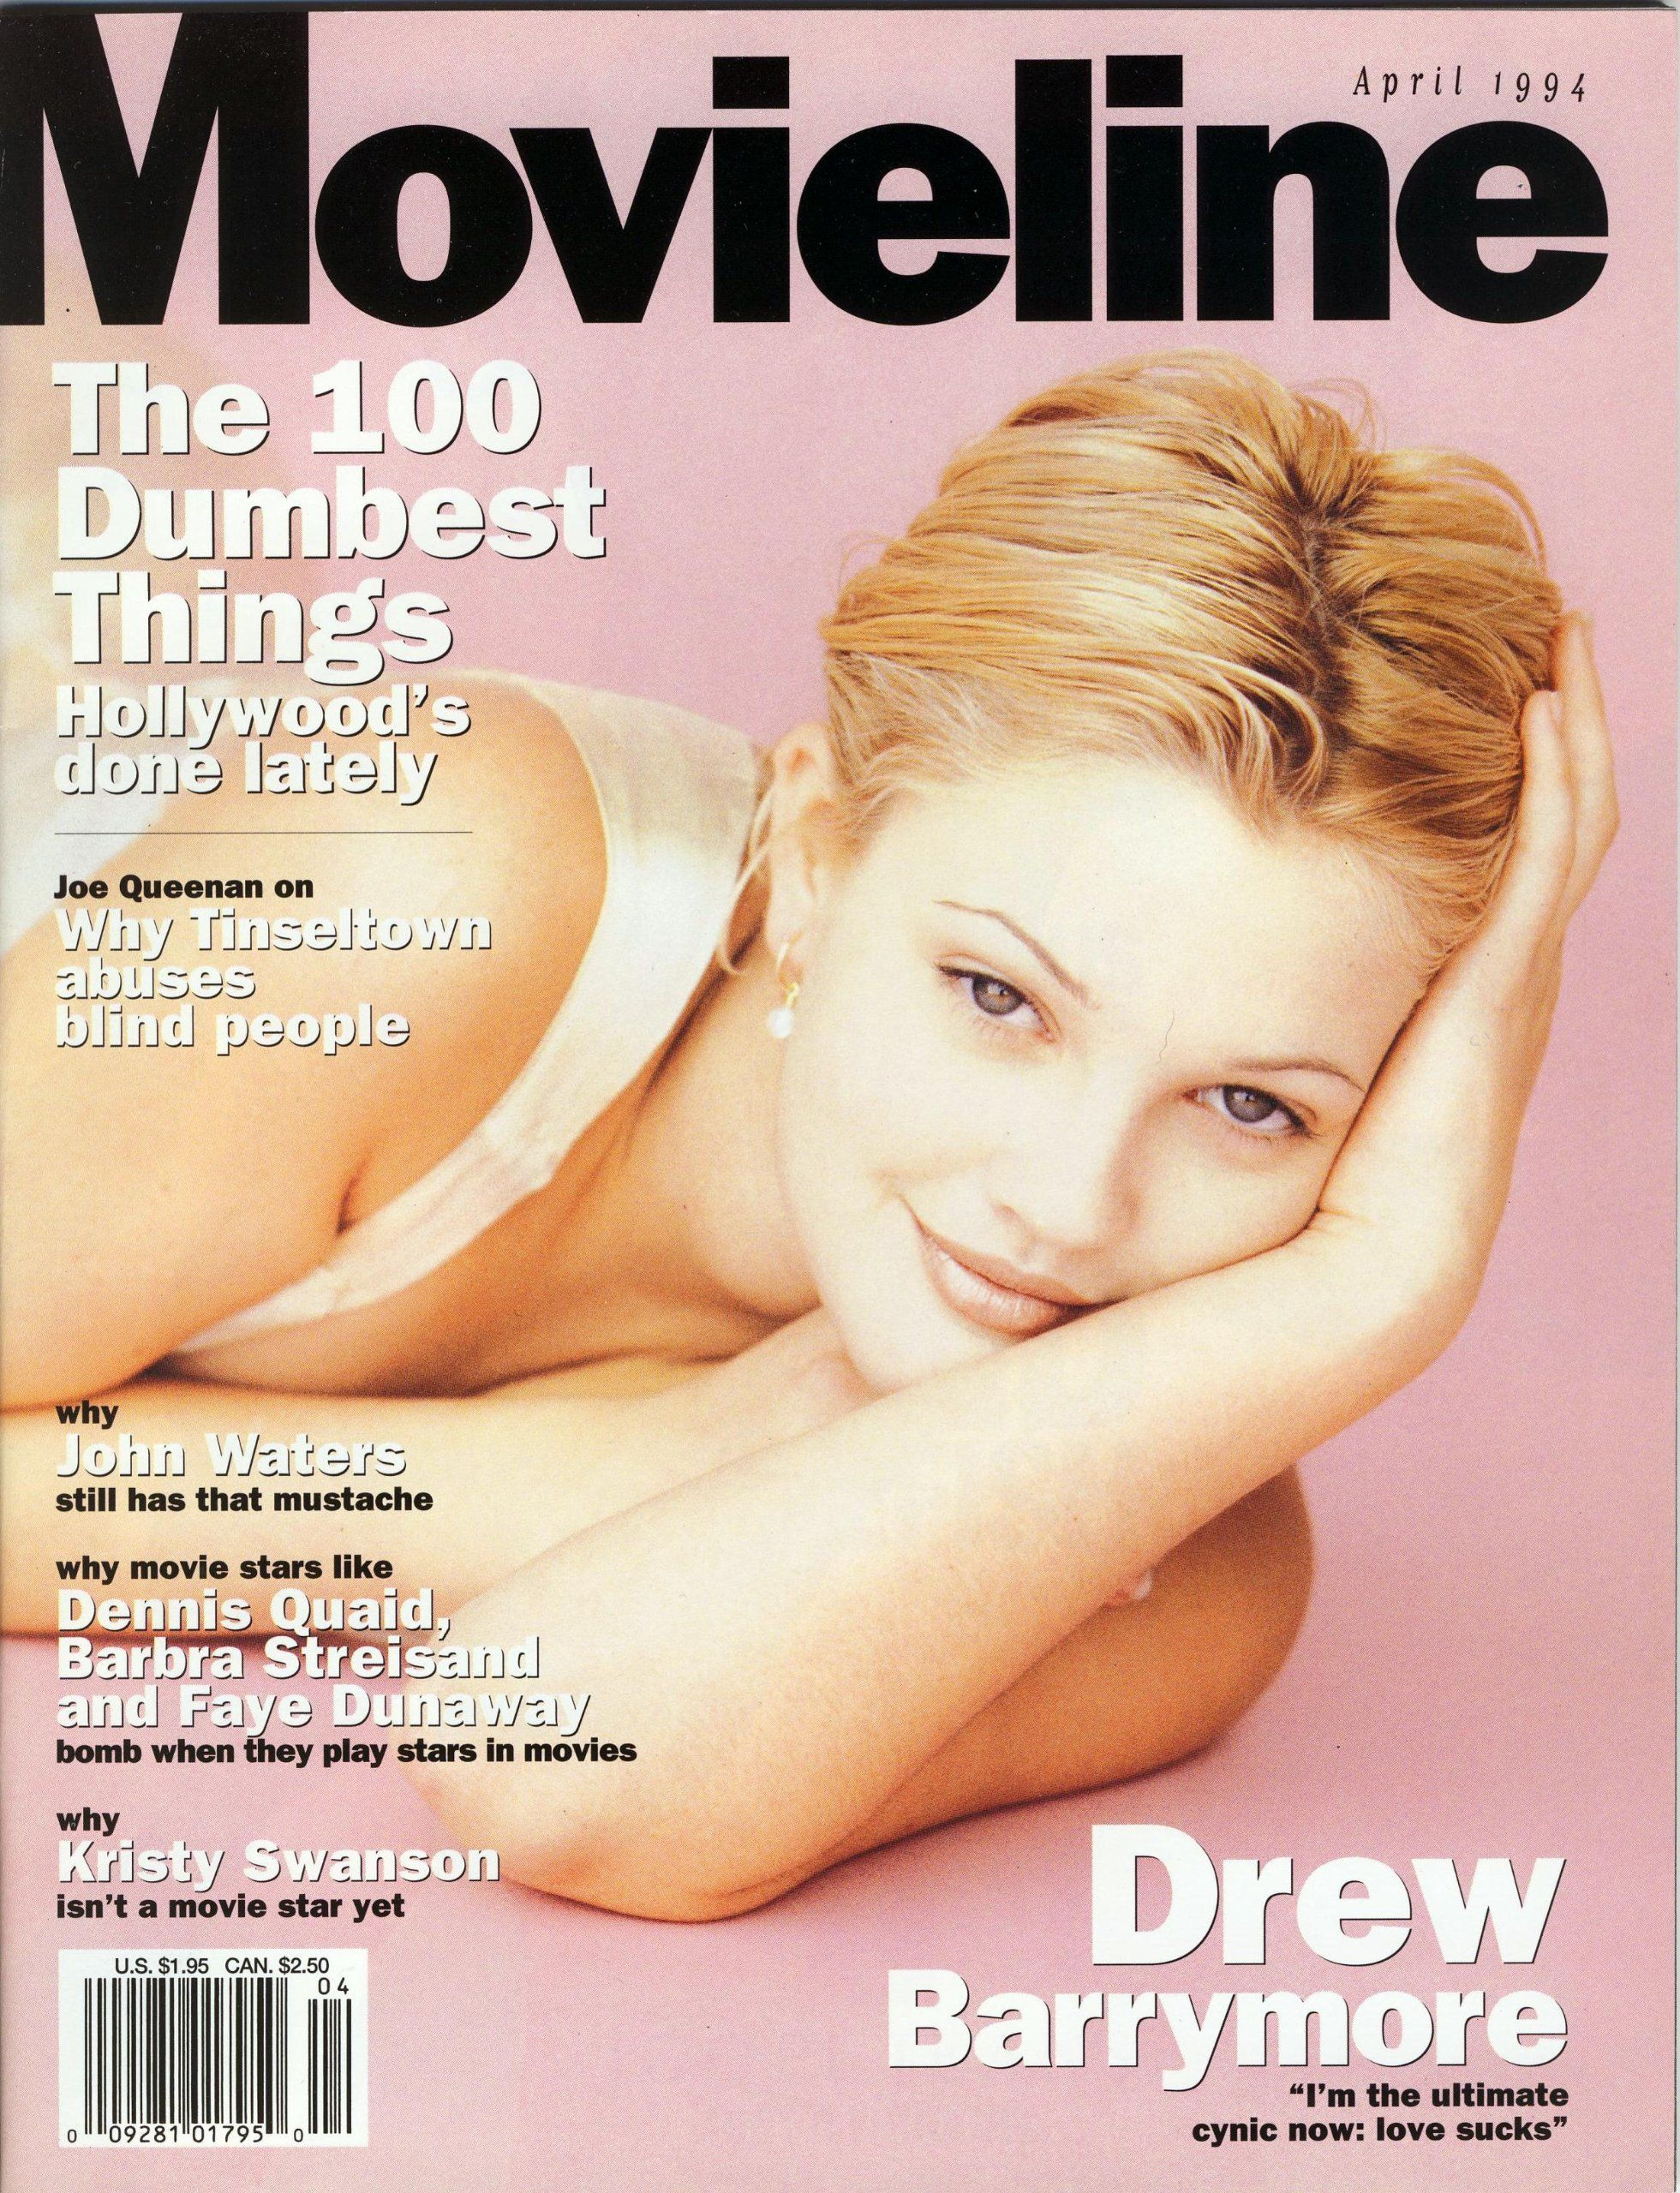 Movieline Magazine, April 1994 (Volume V Number 7) - Drew Barrymore, The 100 Dumbest Things Hollywood's Done Lately, Why Tinseltown Abuses Blind People